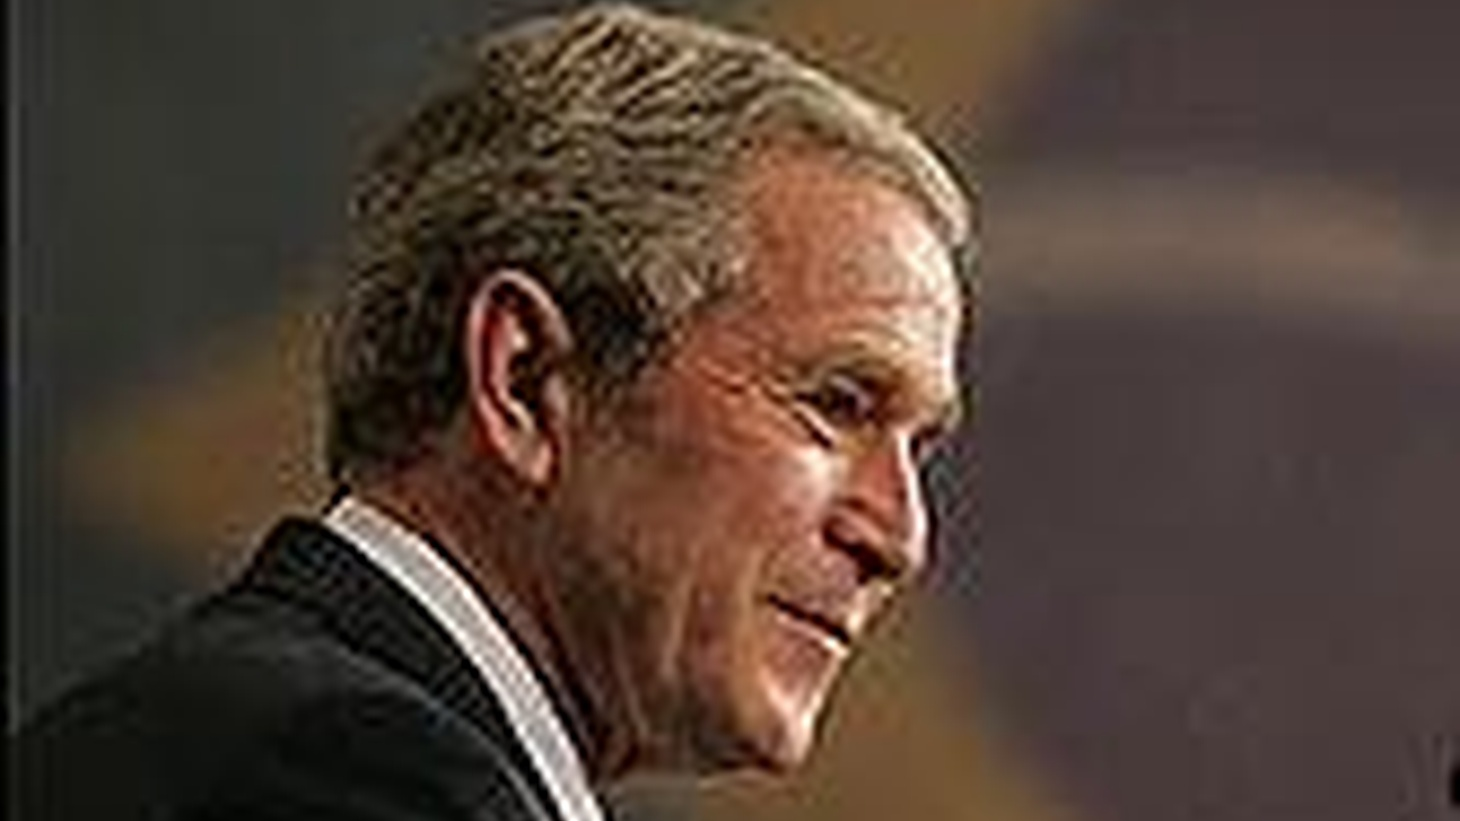 With 21 months left to go in his second term, George Bush looks more and more like a lame duck president.  We hear some harsh criticisms from life-long Republicans and hear whether the awesome powers of the White House can provide for a comeback.  On Reporter's Notebook, we talk with the Italian journalist who exposed forged documents used to bolster the war on Iraq.